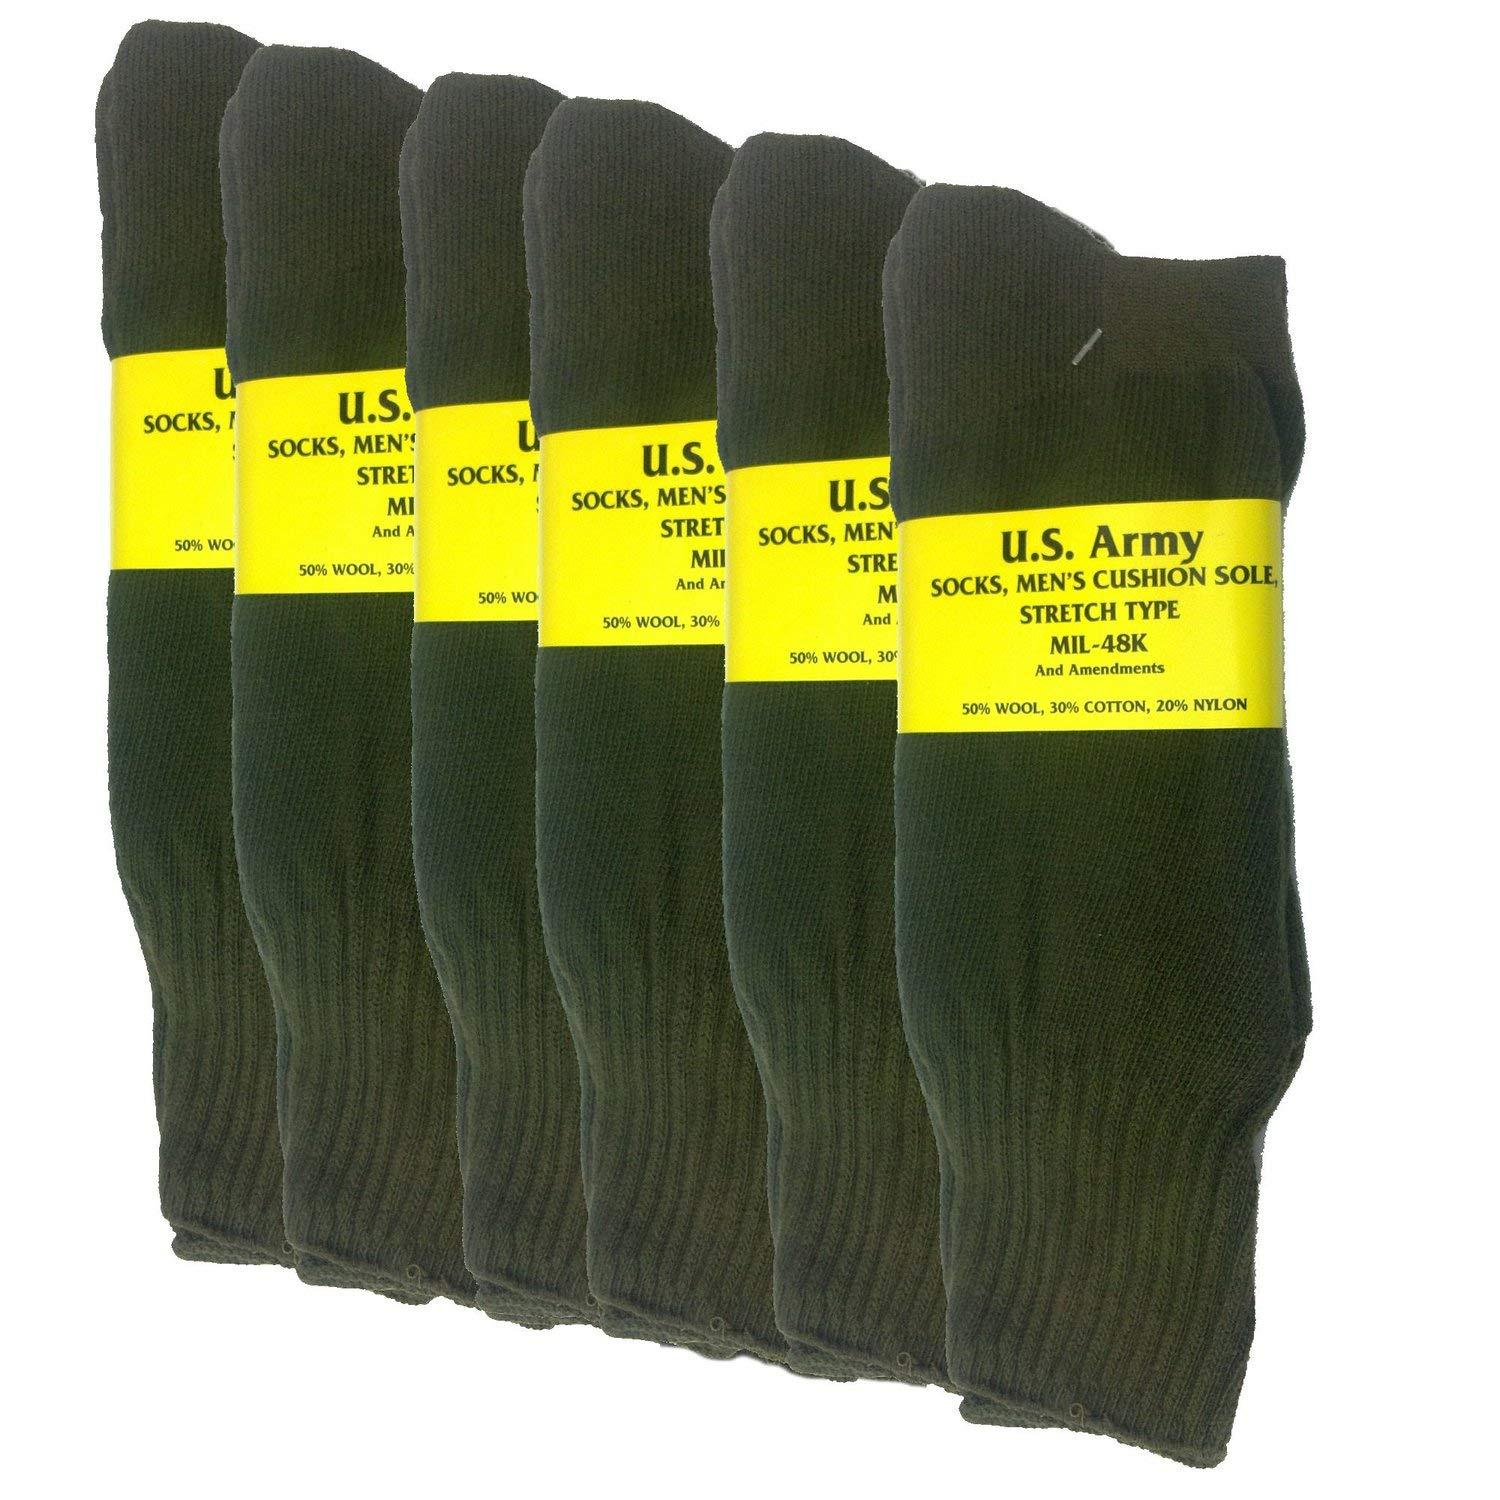 Olive Drab U.S. Army Sock Package - 6 PAIRS - Small by CUSTOM